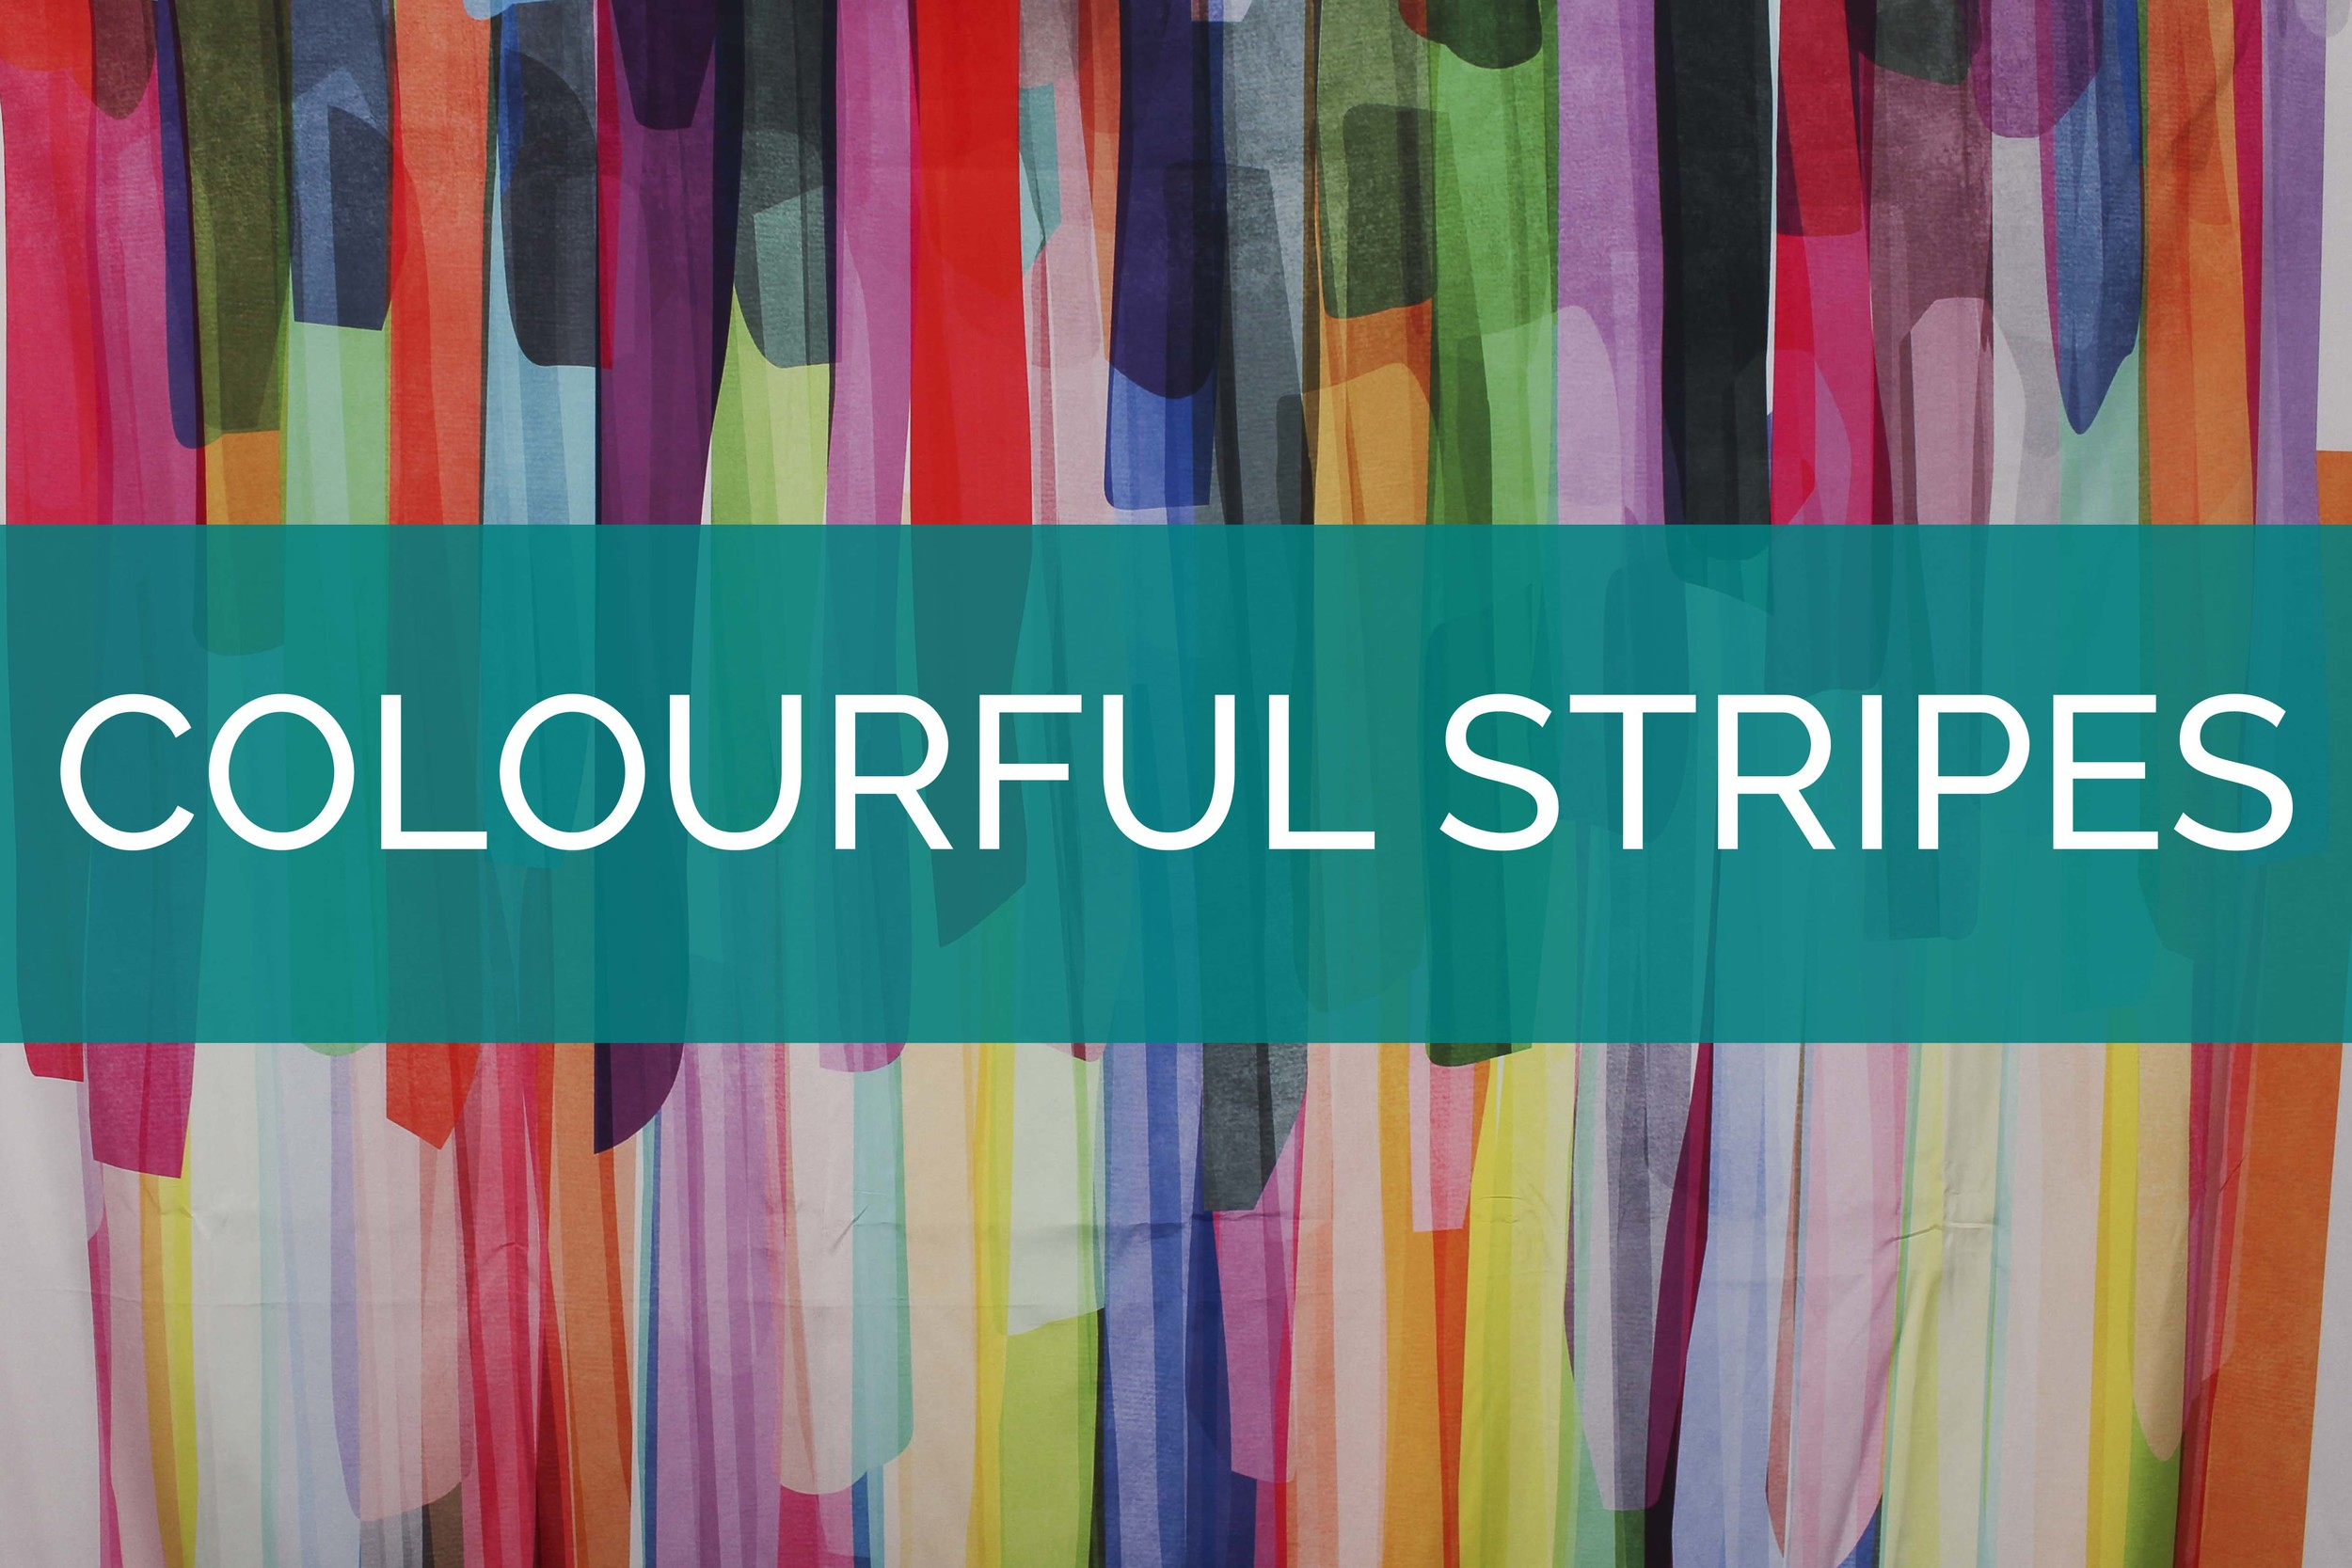 Colurful_Stripes.jpg